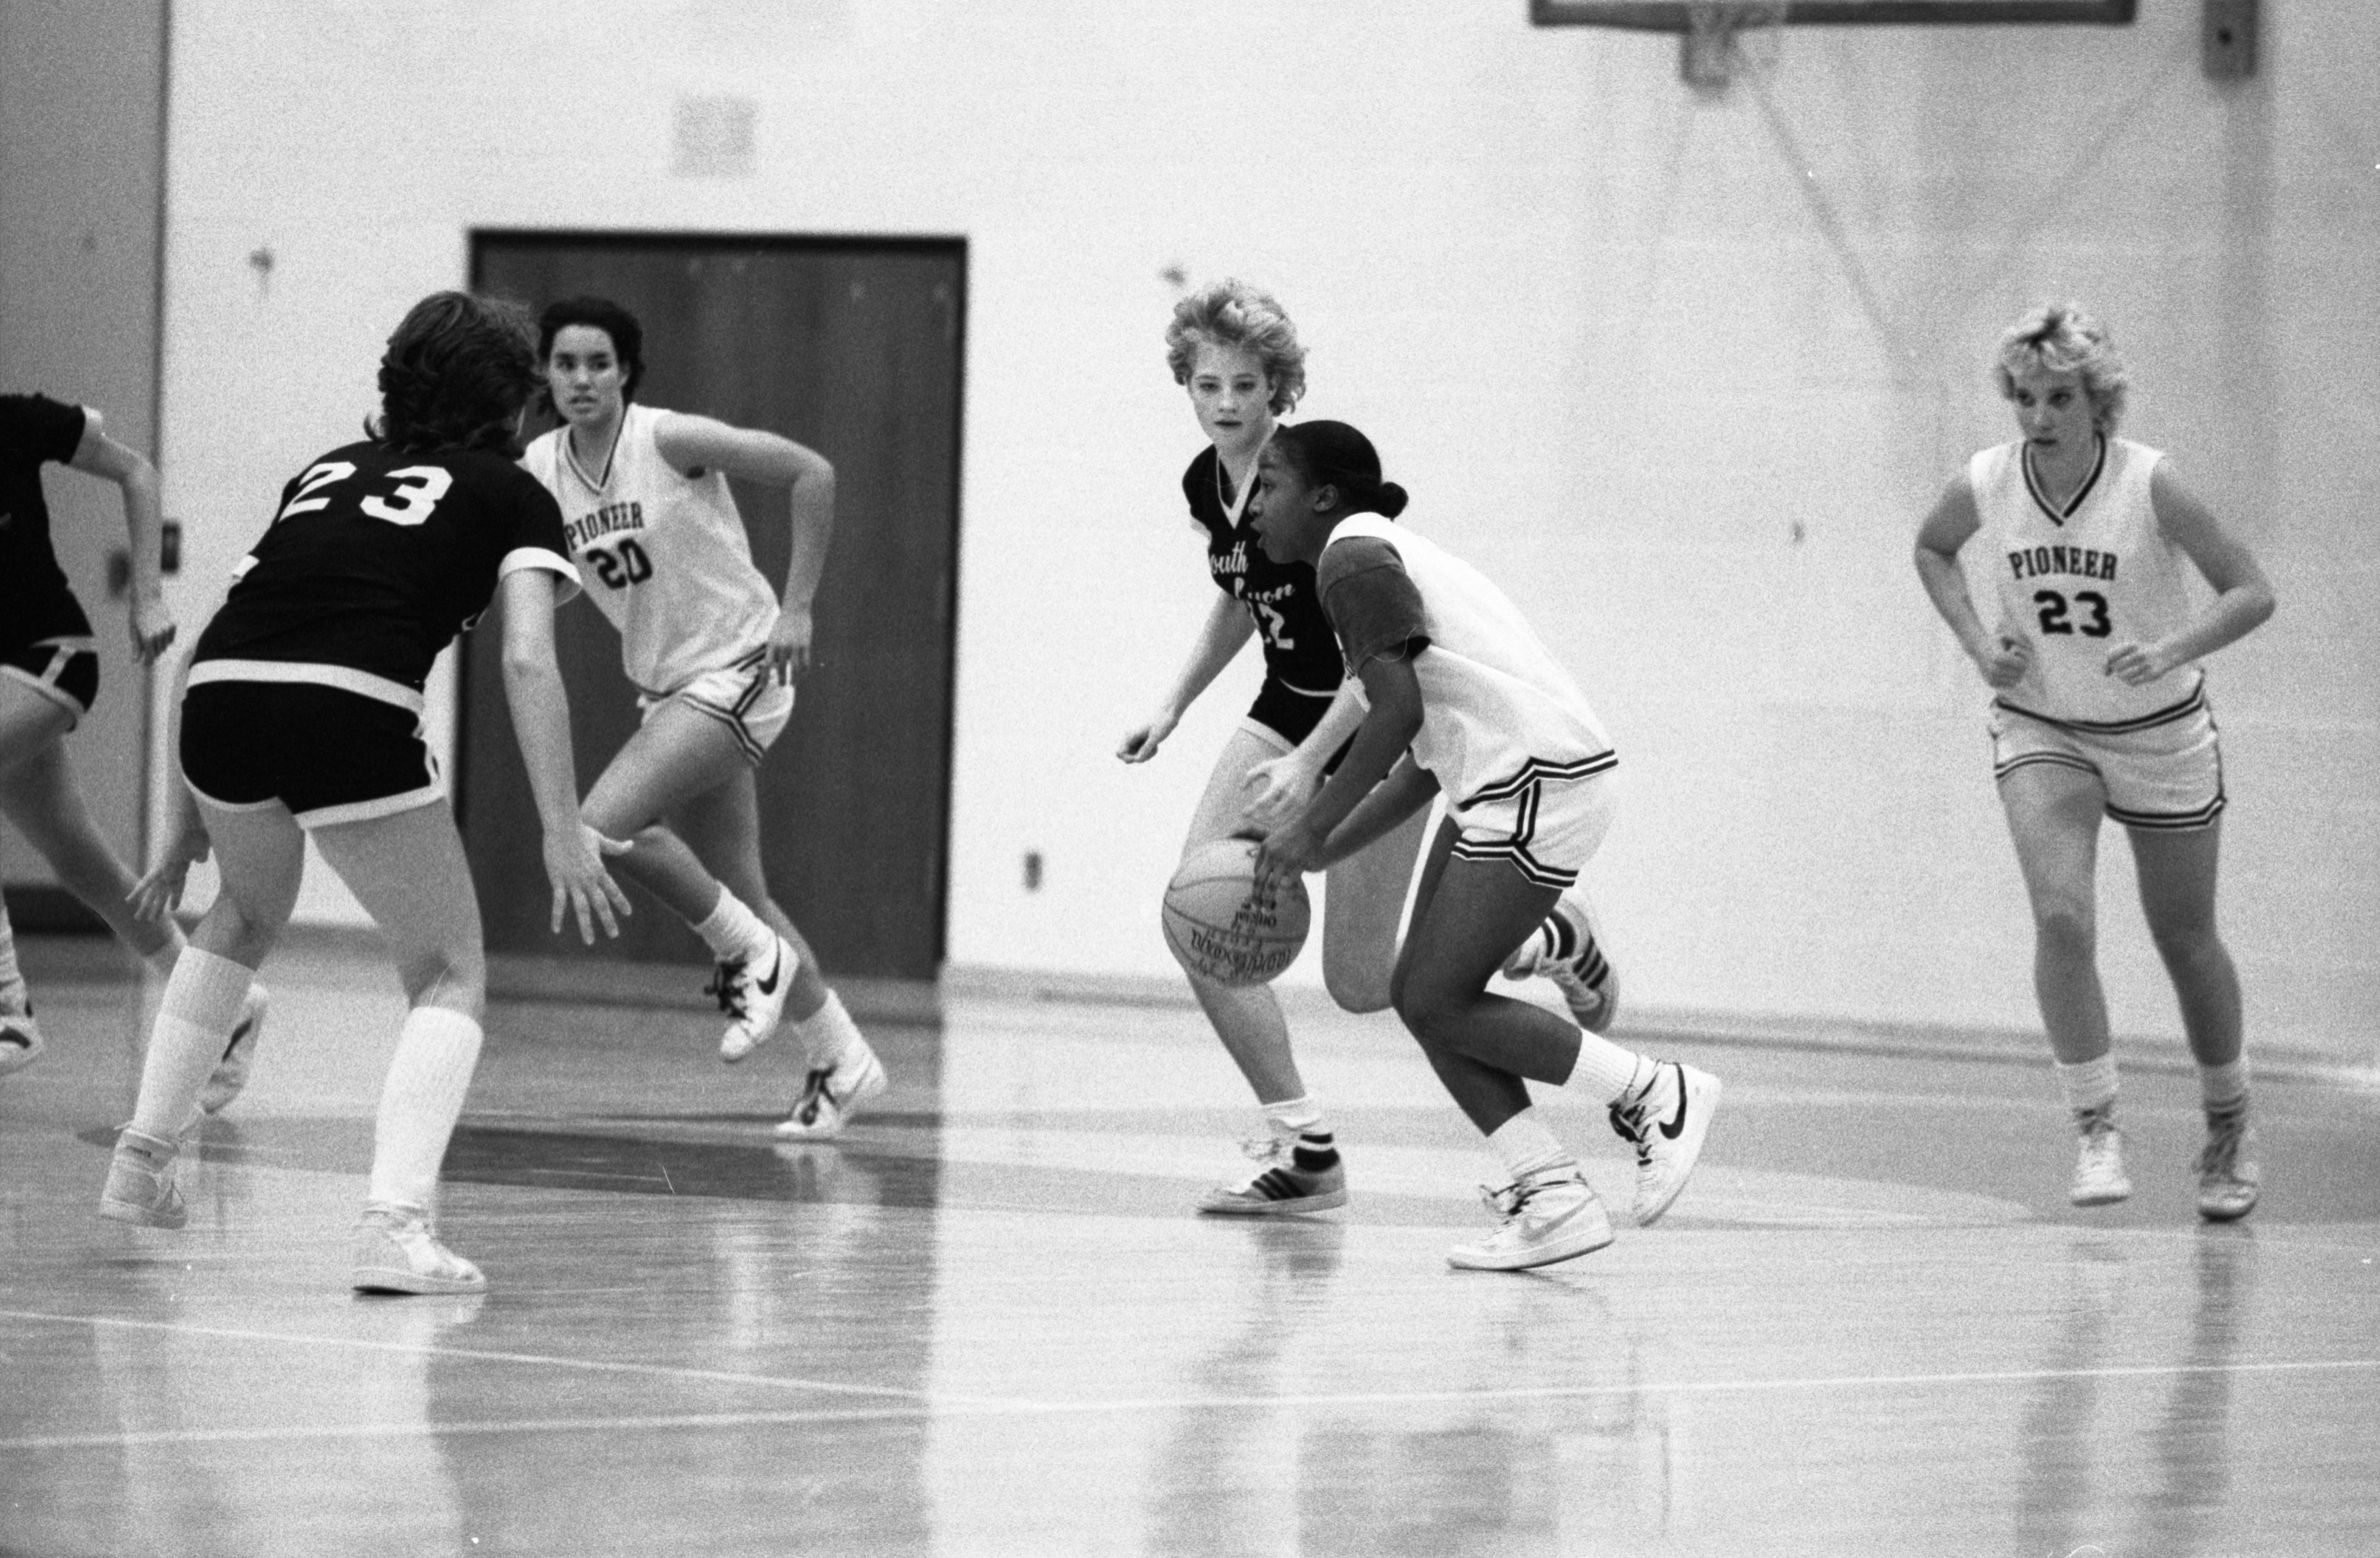 Girl's Basketball Finals, Pioneer Vs S. Lyon, November 1983 image